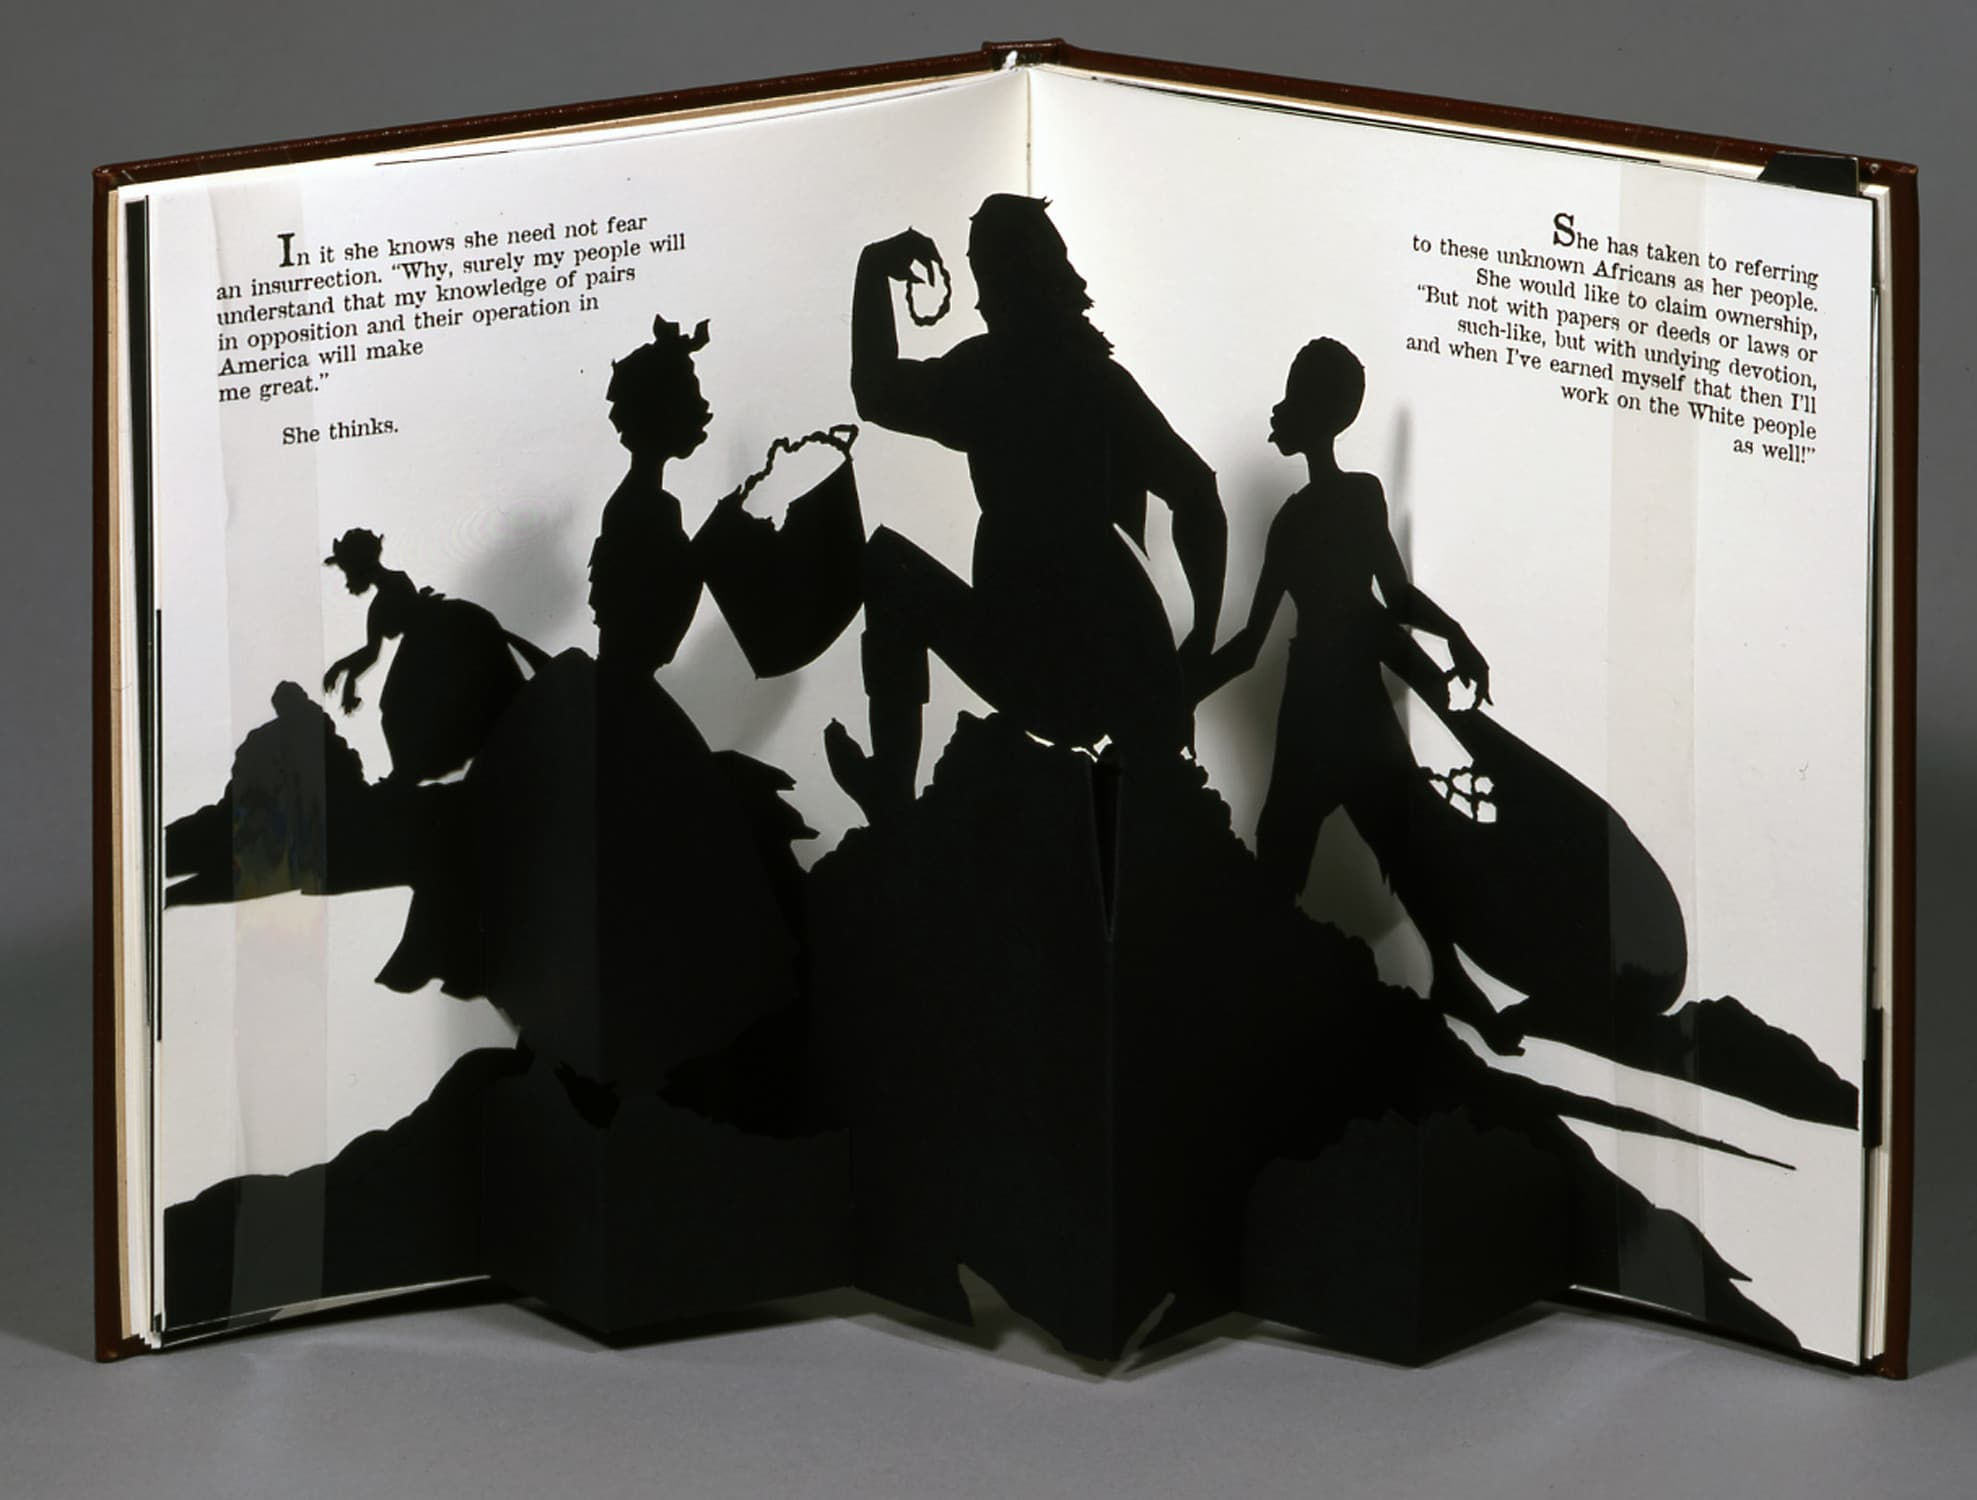 Freedom: A Fable Original paper designs: laser-cut black paper silhouettes, folded as pop-up elements